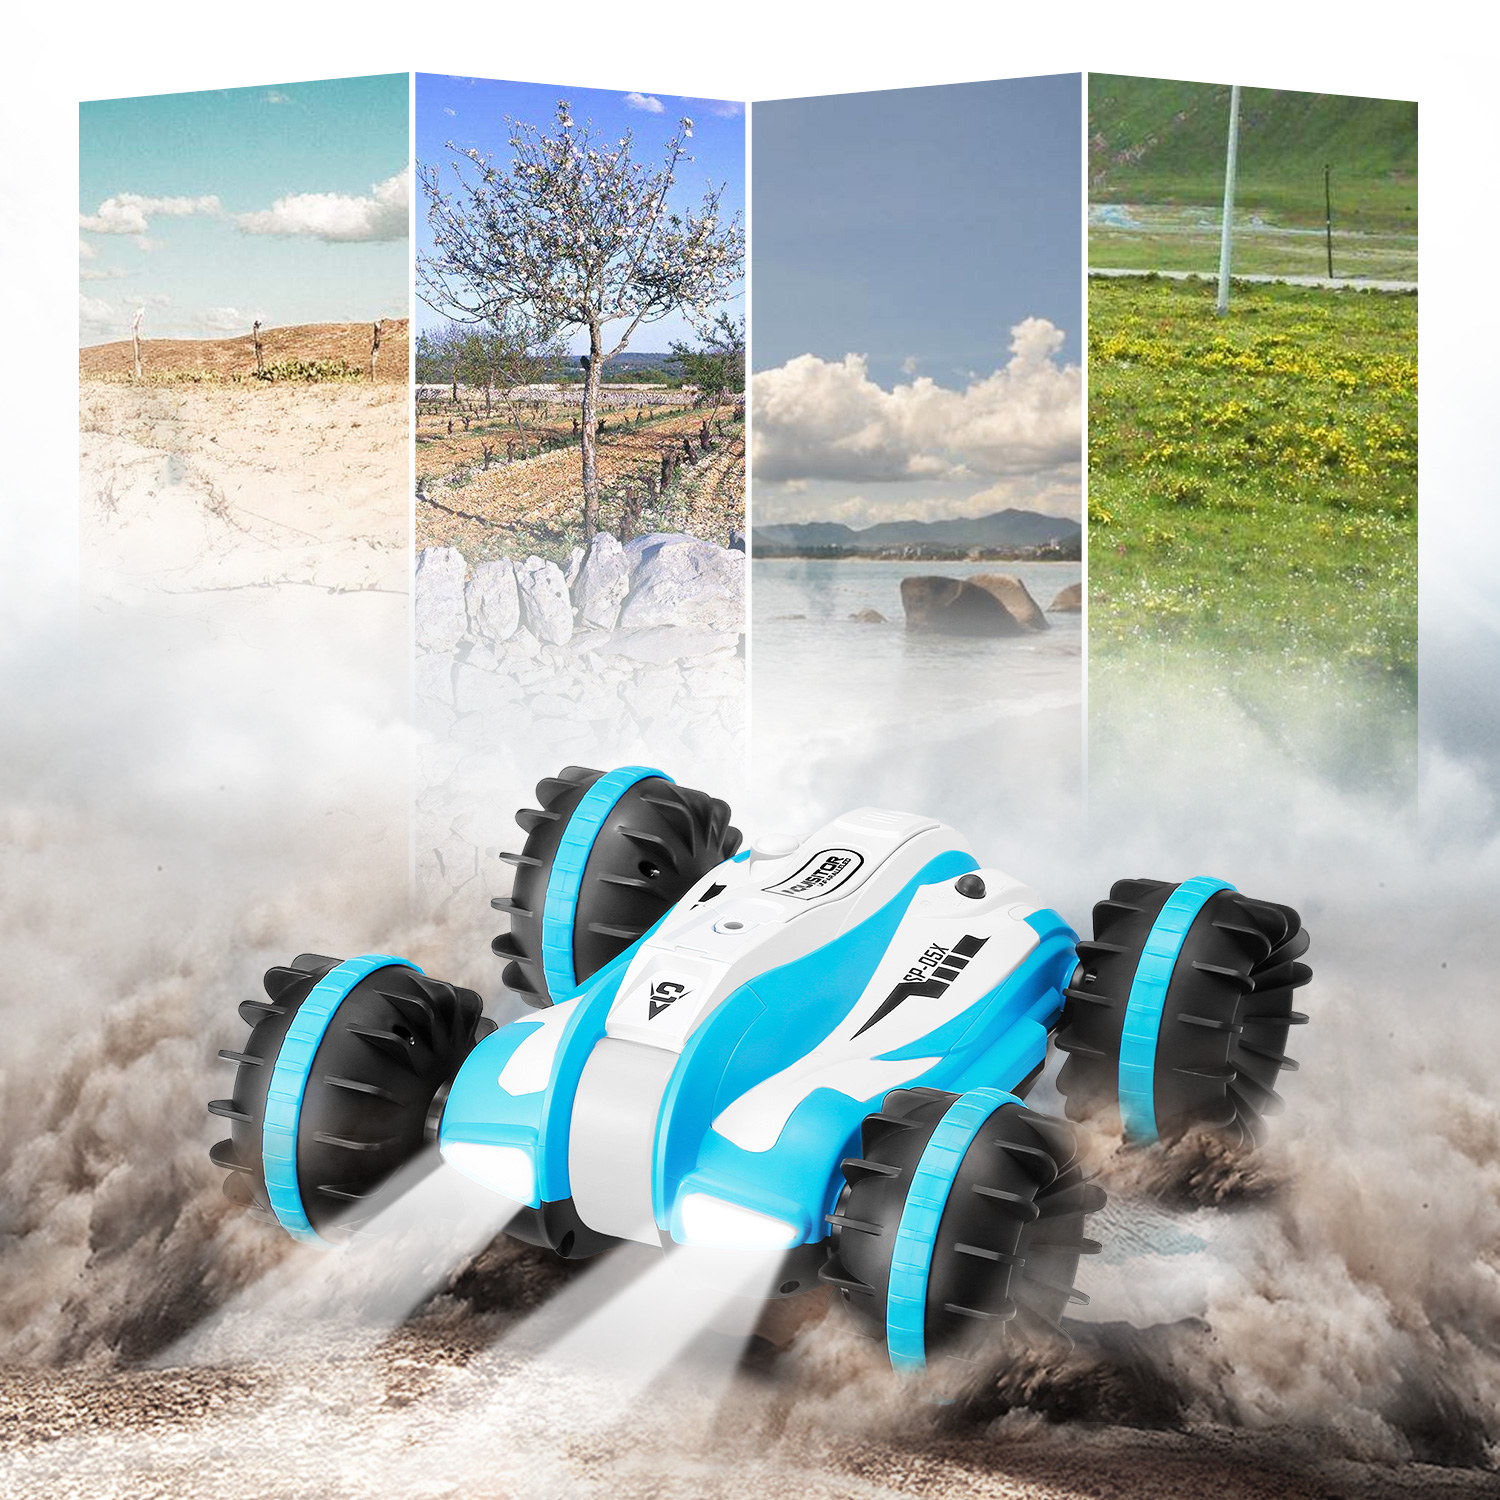 YED 1804 6CH RC Car 2.4GHz 6-Channel 1:12 Scale Amphibious Car 360-Degree Rotation Stunt Vehicle Toy Suitable For Water and Land